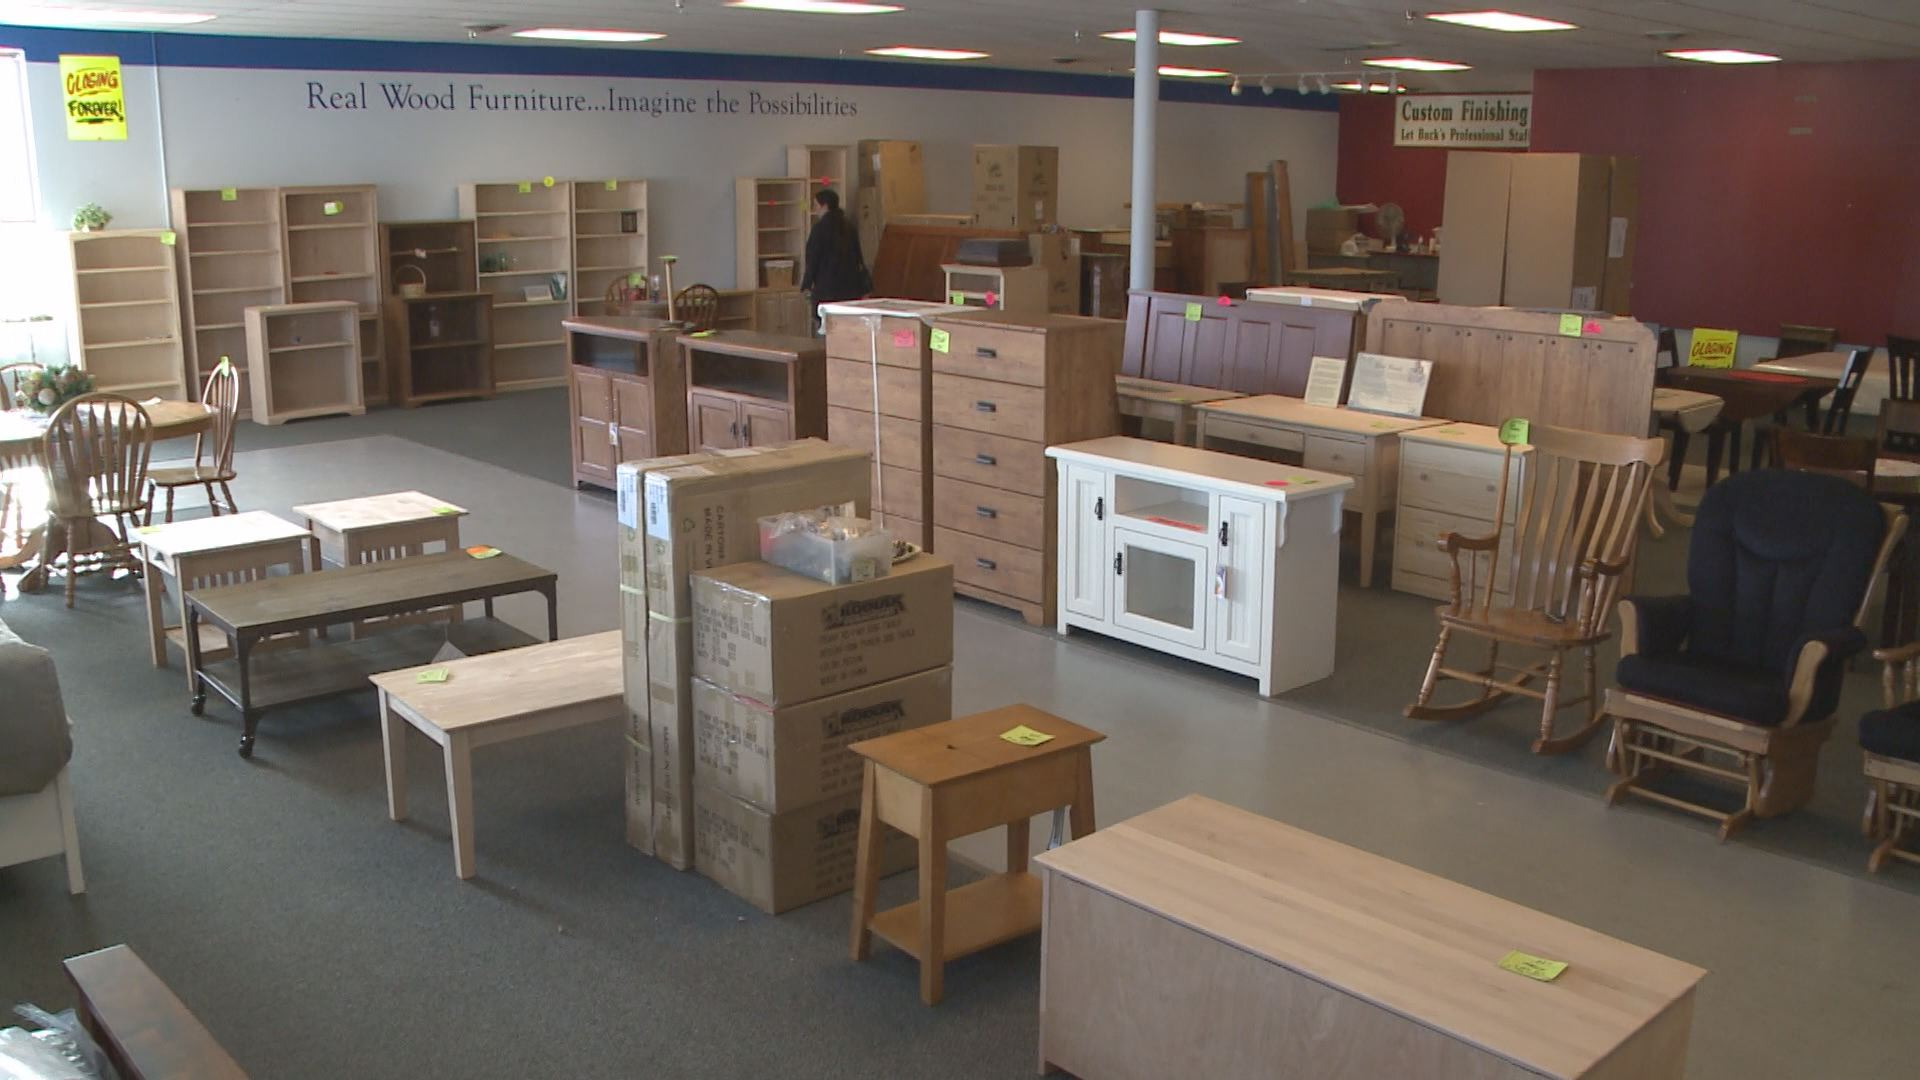 Buck s Unpainted Furniture closing reflects chaging